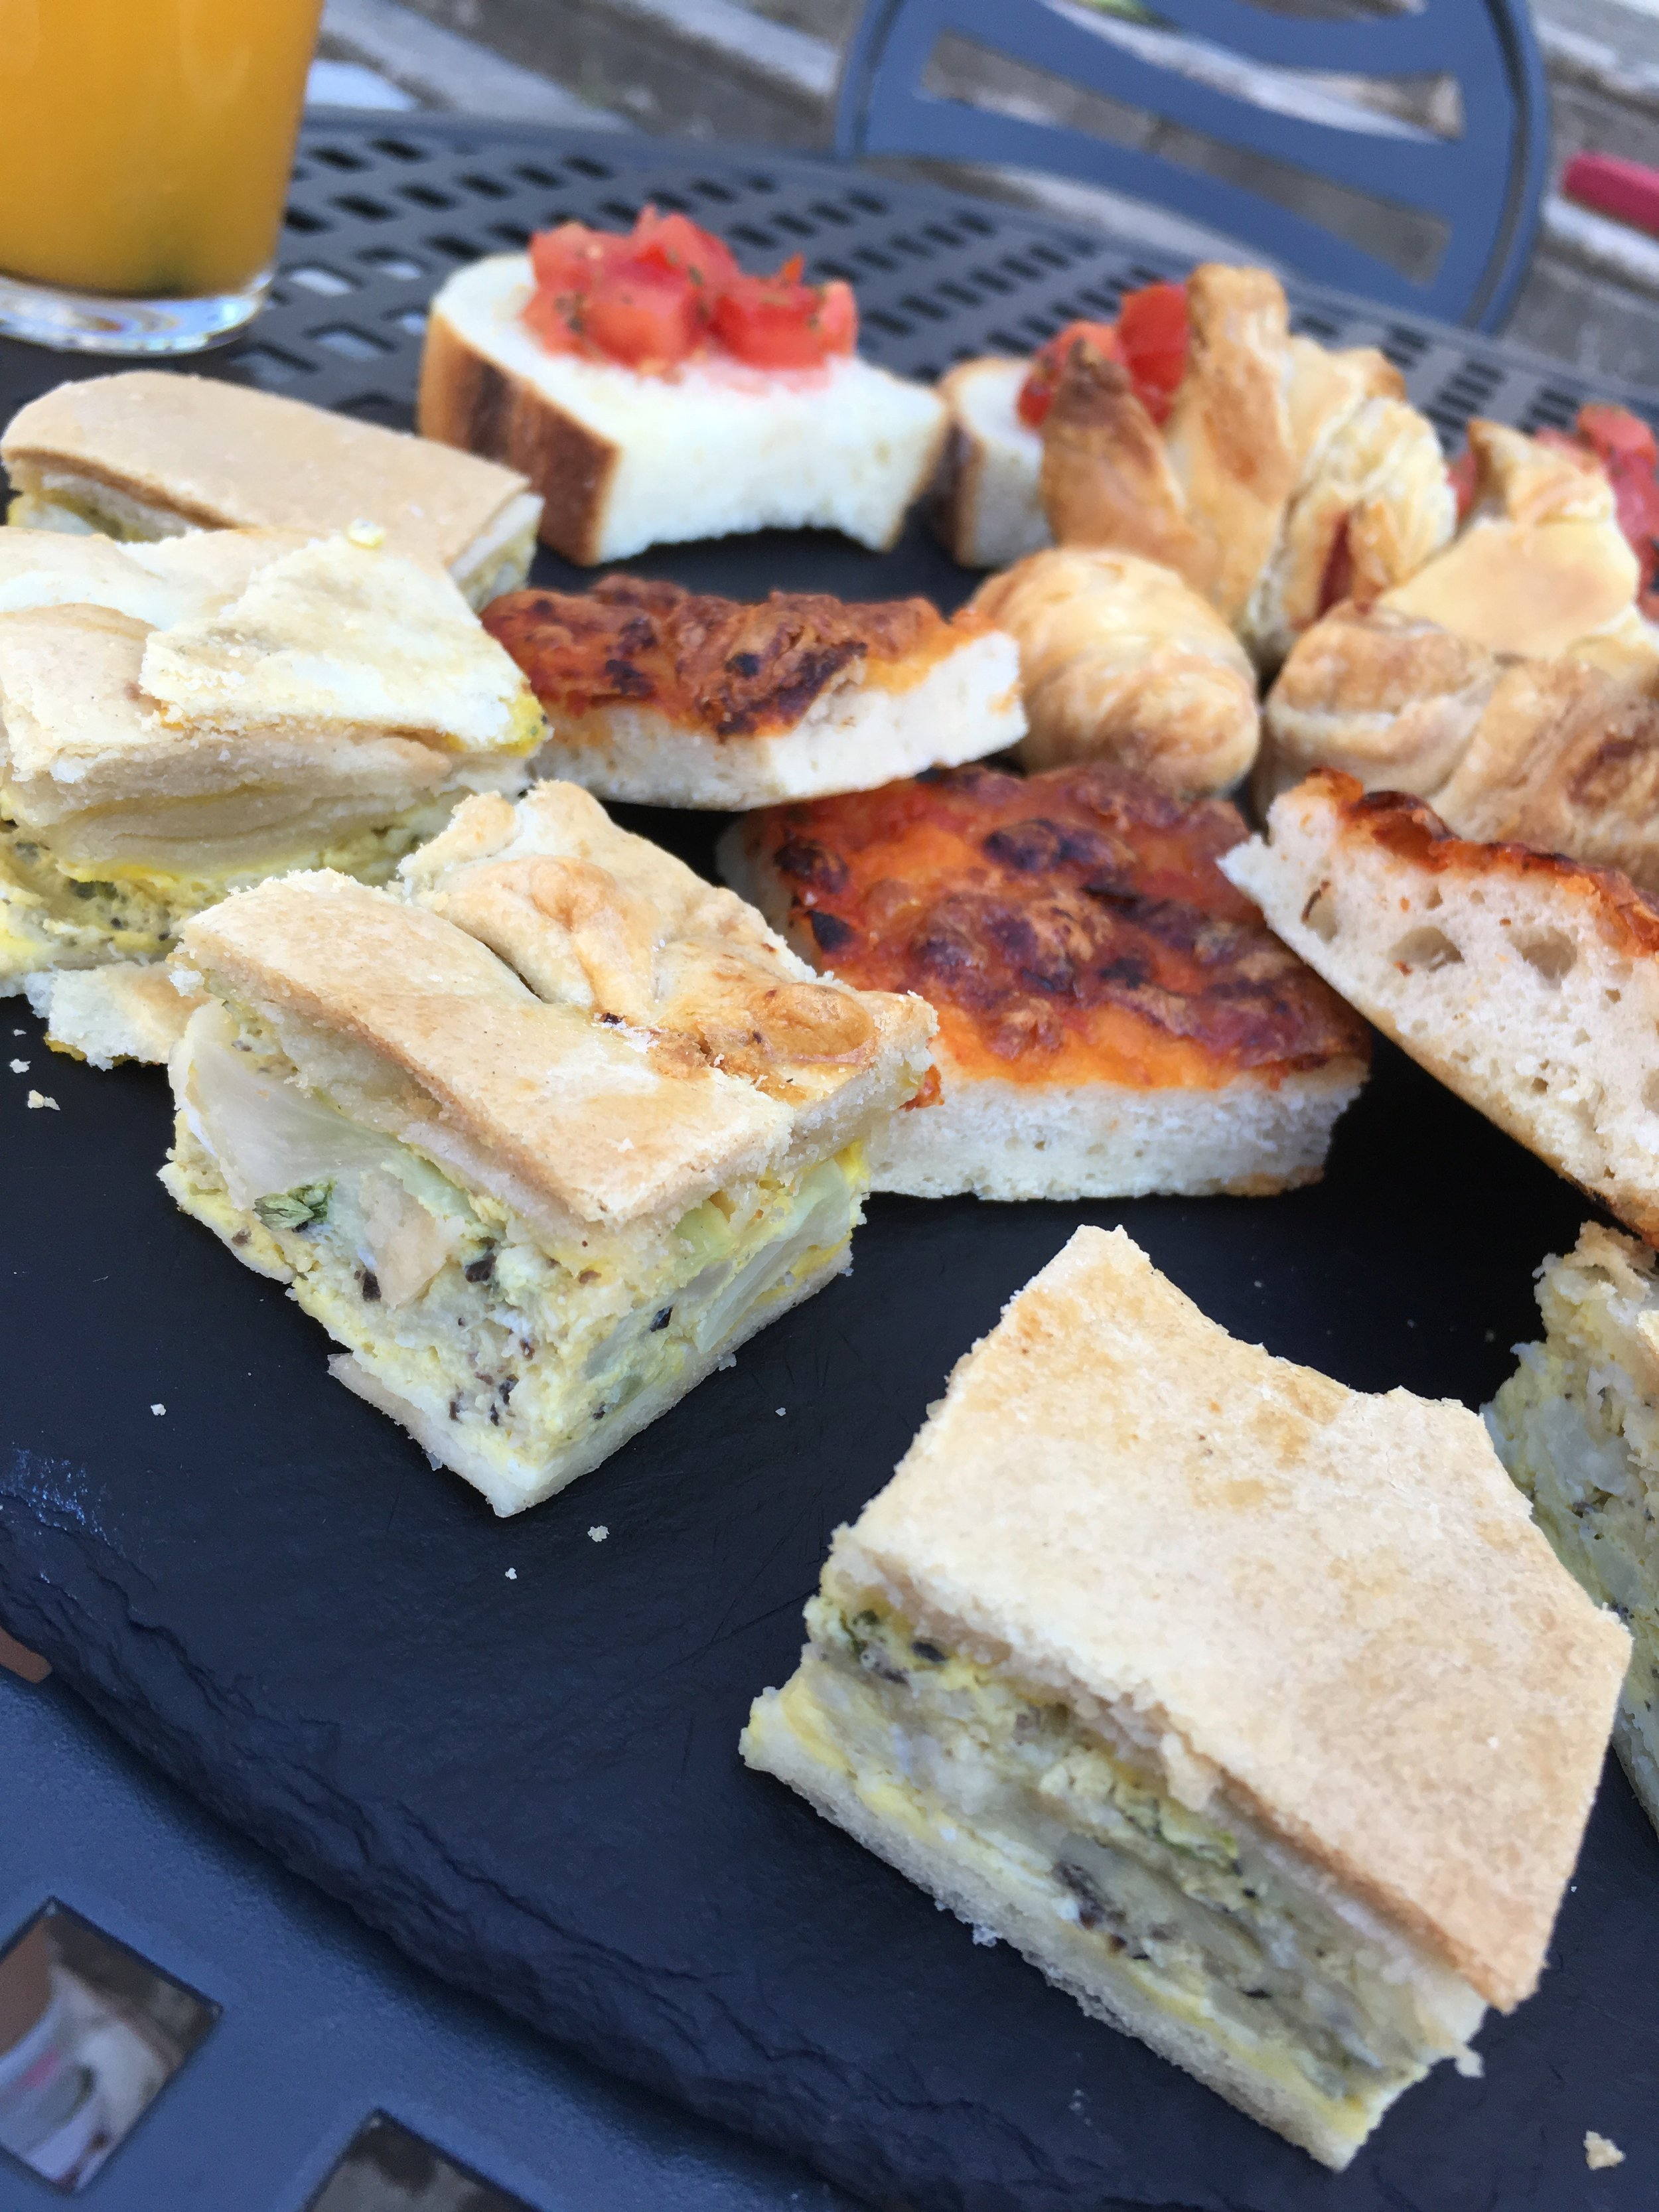 Aperitivi treats in Sulmona, Abruzzo-- I can't get those pastry encased frittata out of my mind! I'll be working on those for my next Spritz party